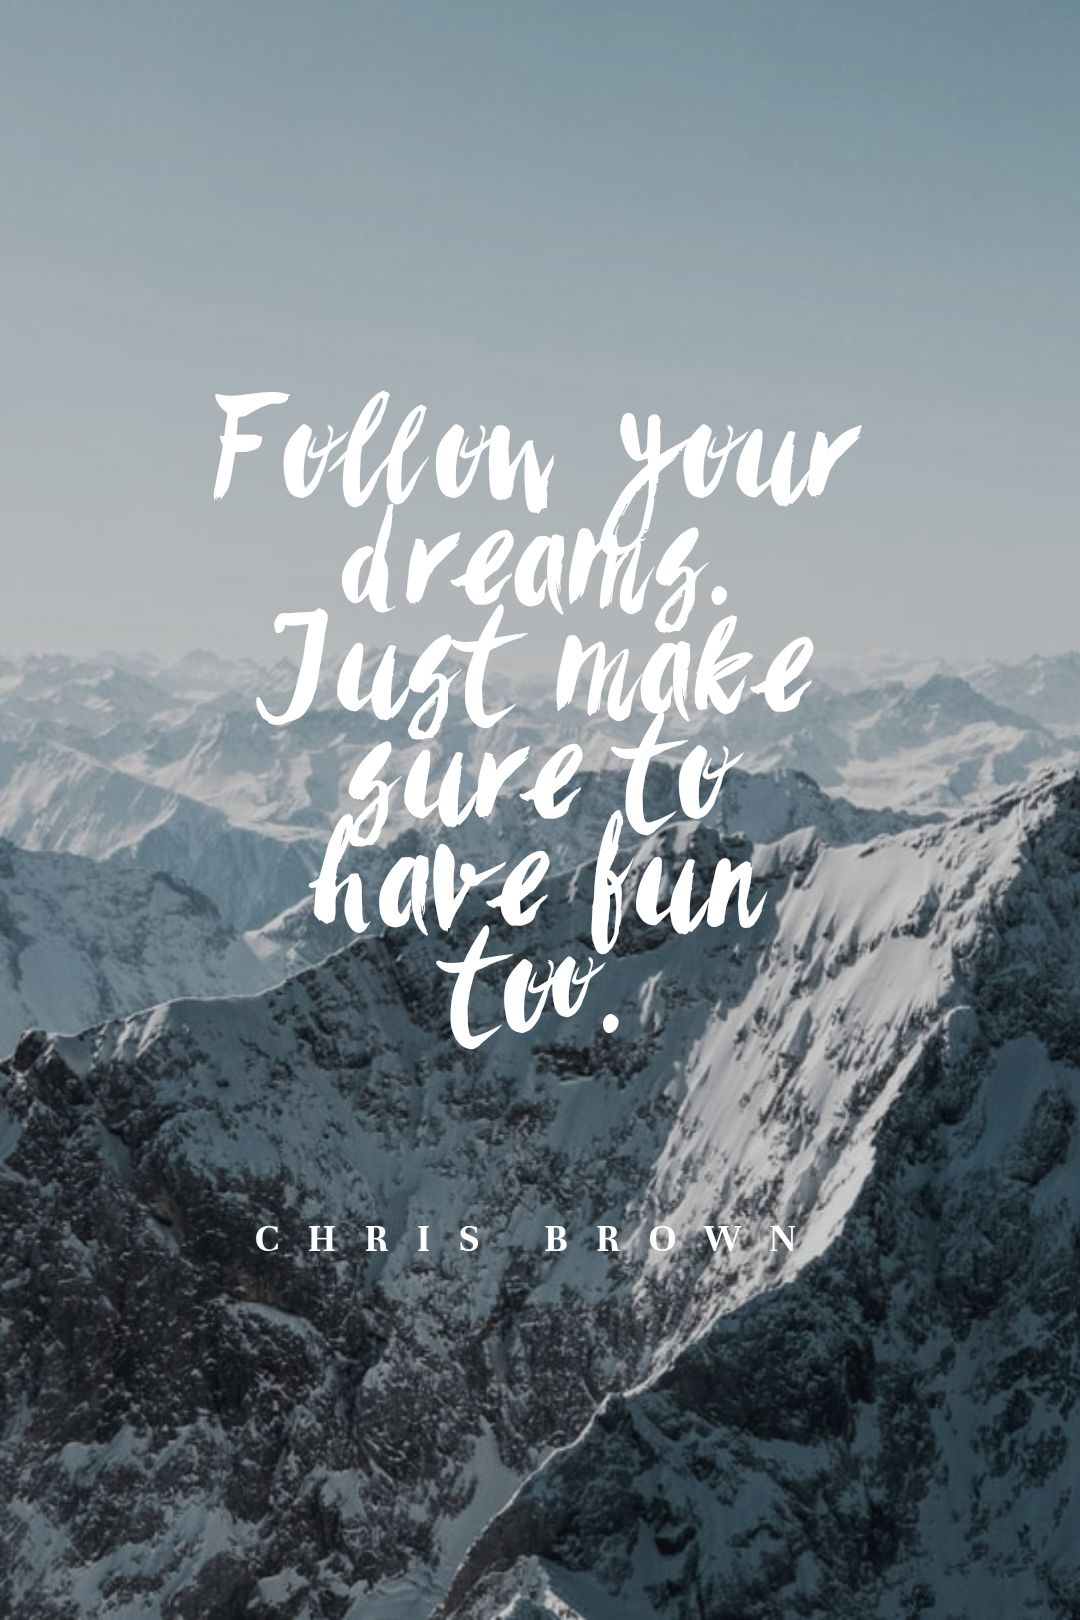 Quotes image of Follow your dreams. Just make sure to have fun too.